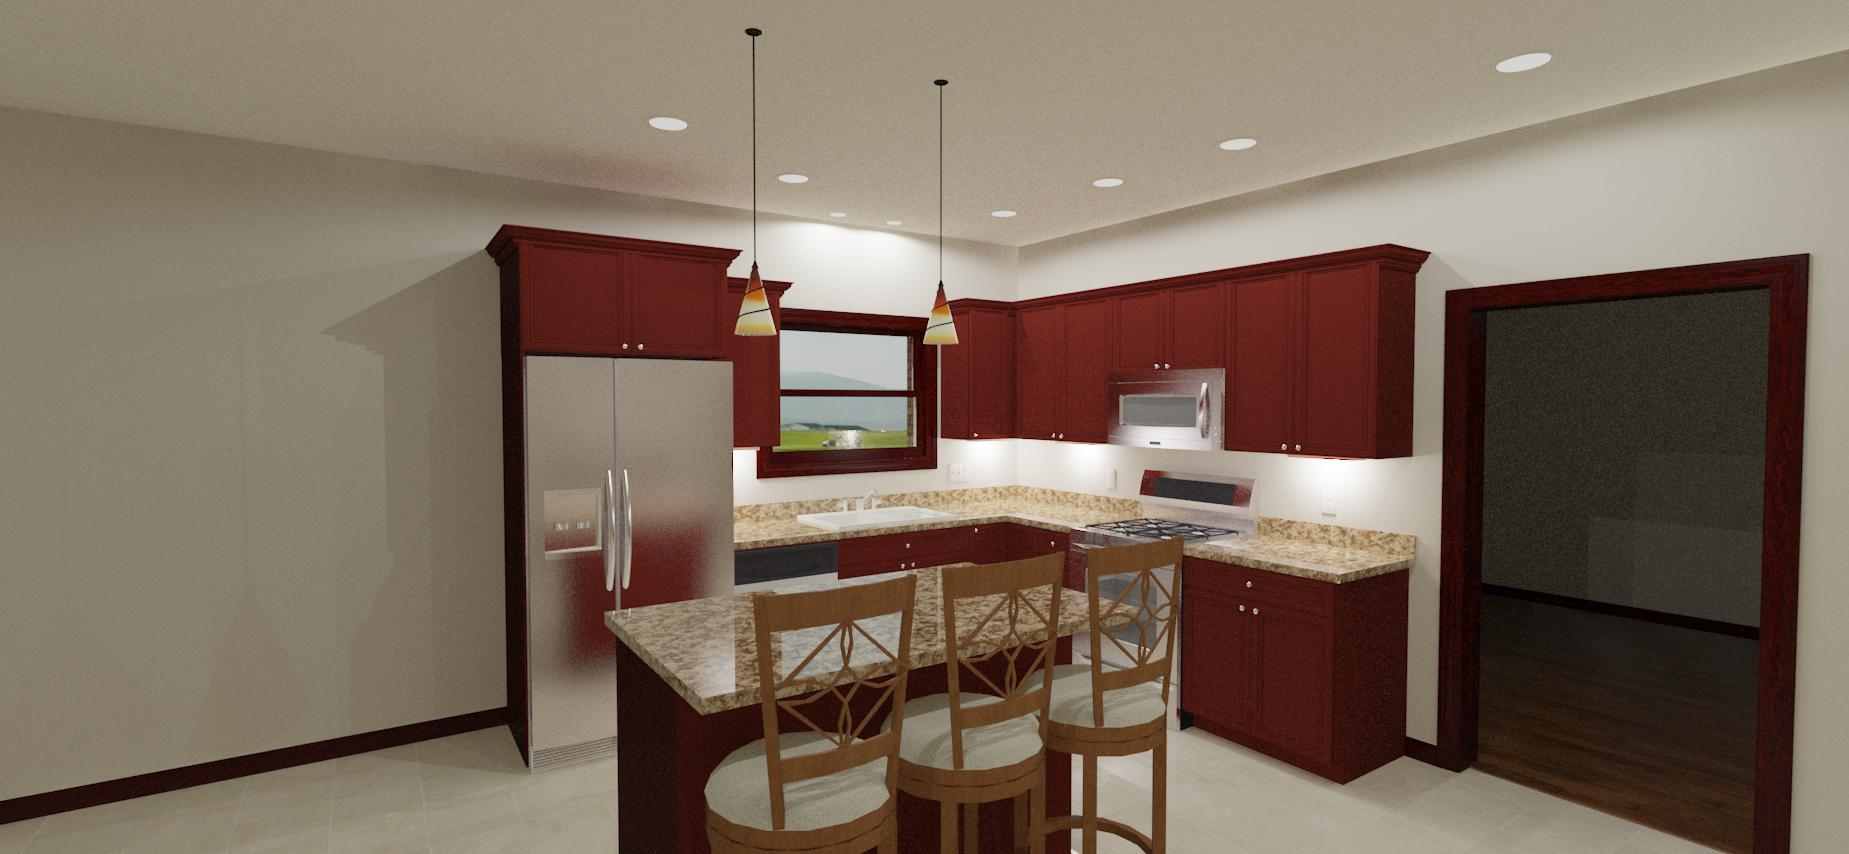 New Kitchen Recessed Lighting Layout - Electrician Talk ... on kitchen recessed lighting layout guide, kitchen recessed lighting placement, 10 x 10 kitchen layout, kitchen lighting can light placement, kitchen lighting ideas, kitchen island lighting, kitchen can lighting layout,